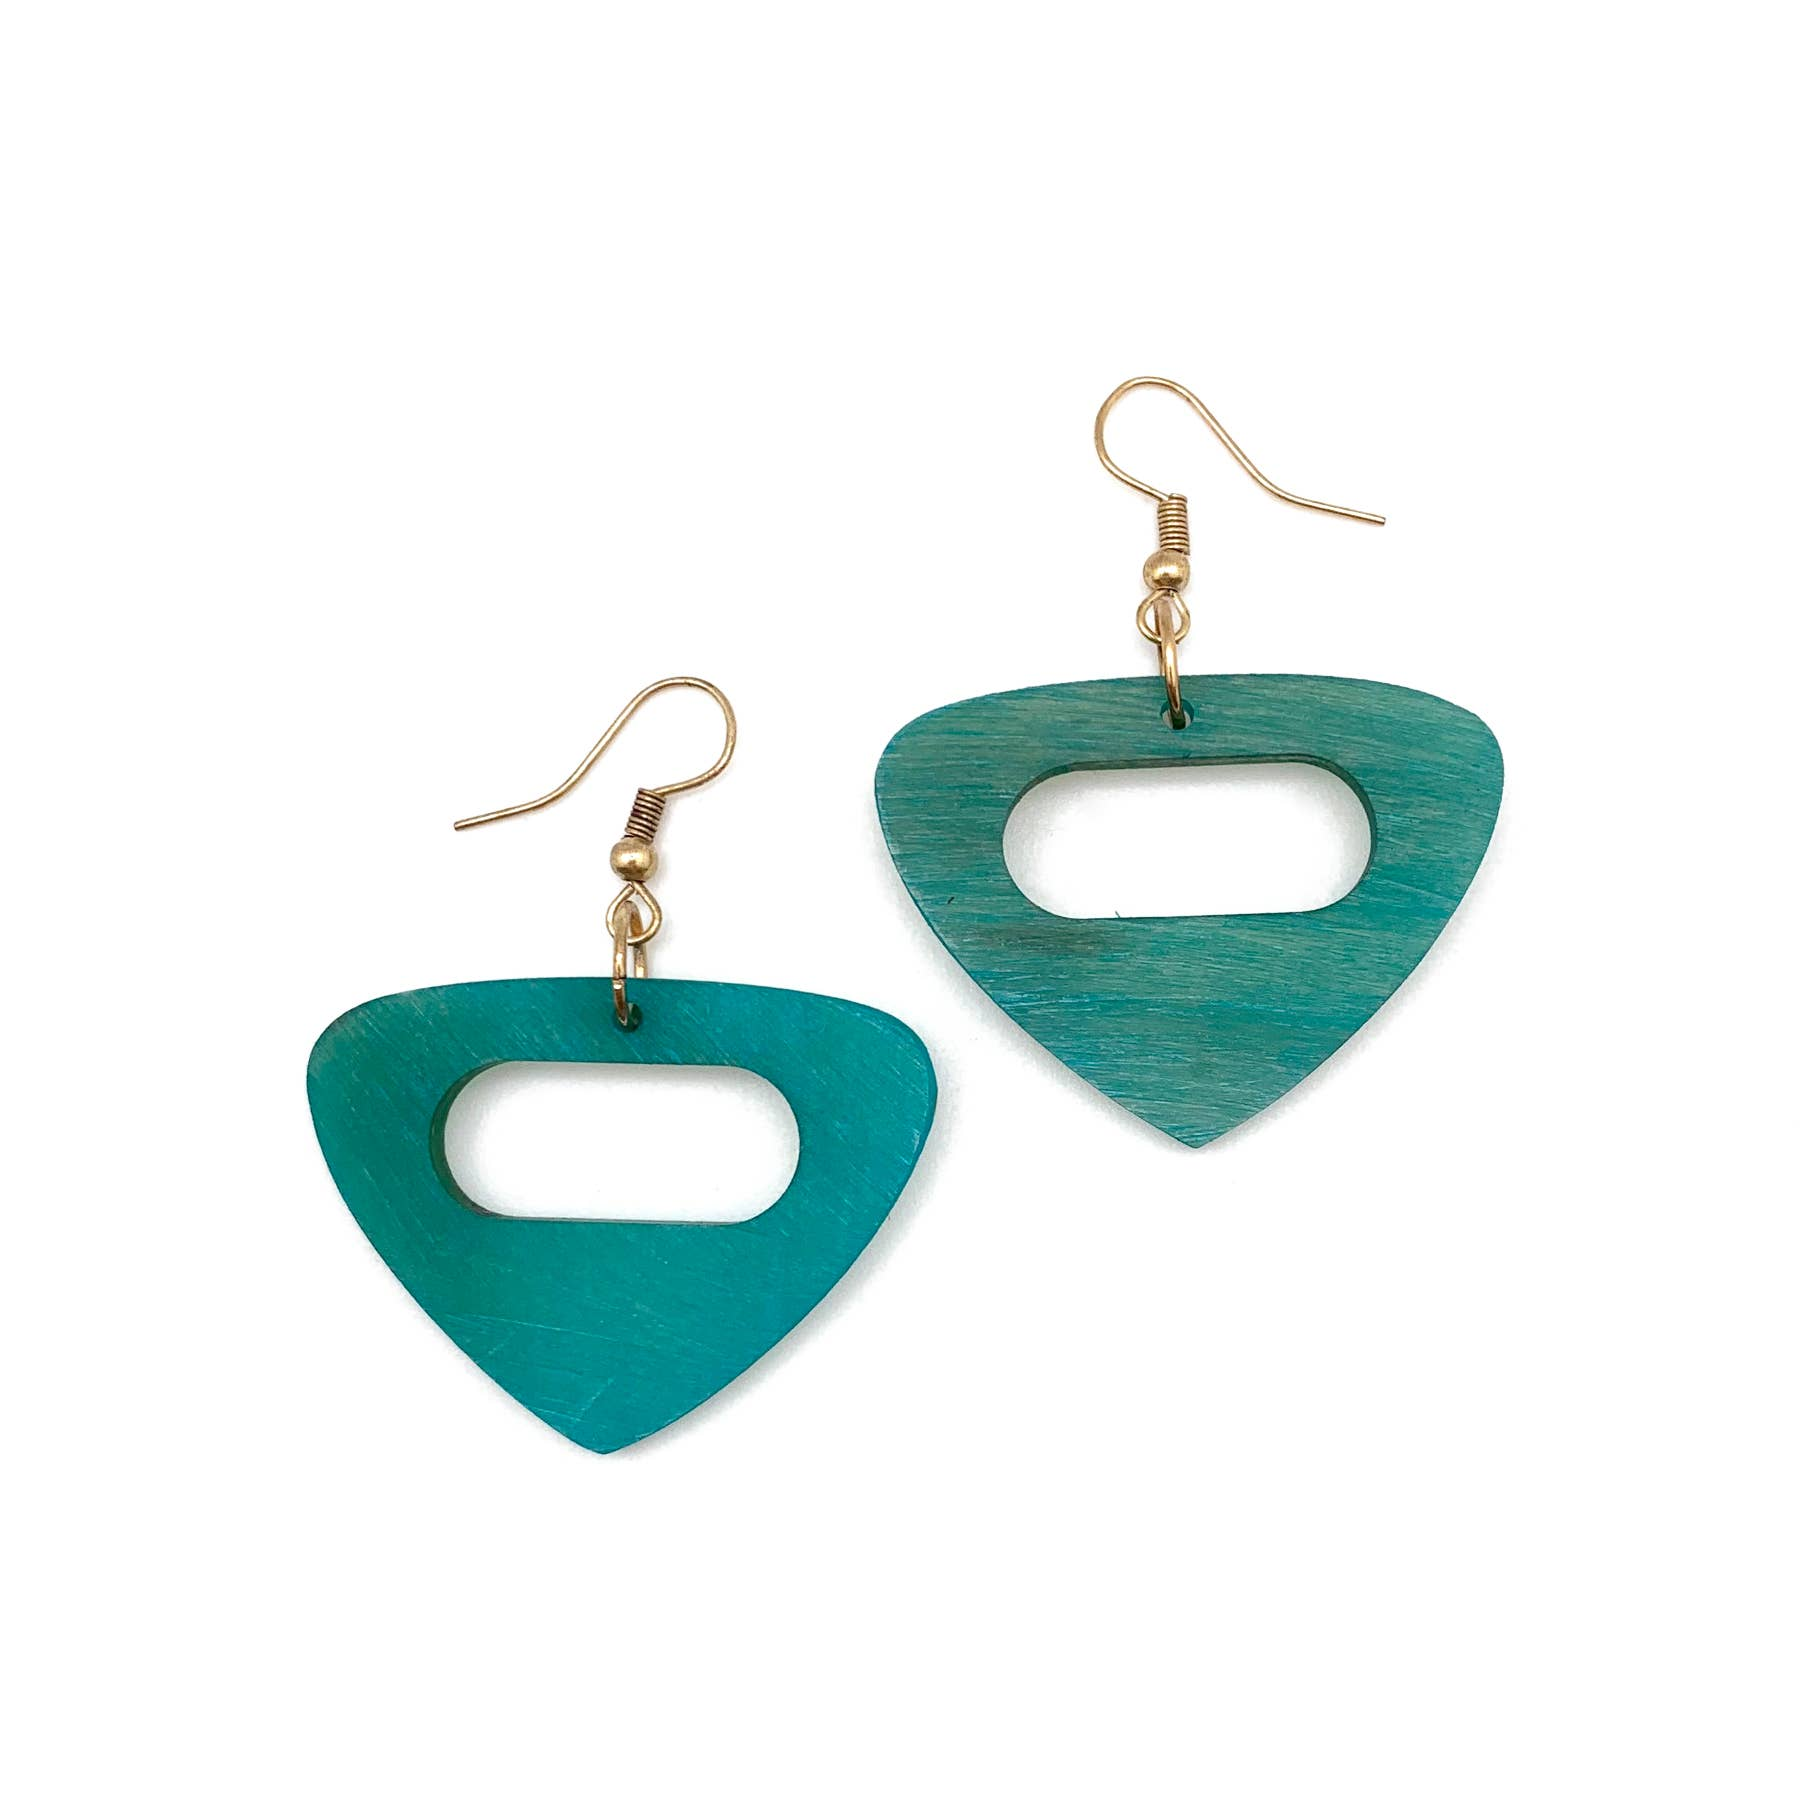 Omala Azure Coast Collection Earrings - Open Triangle